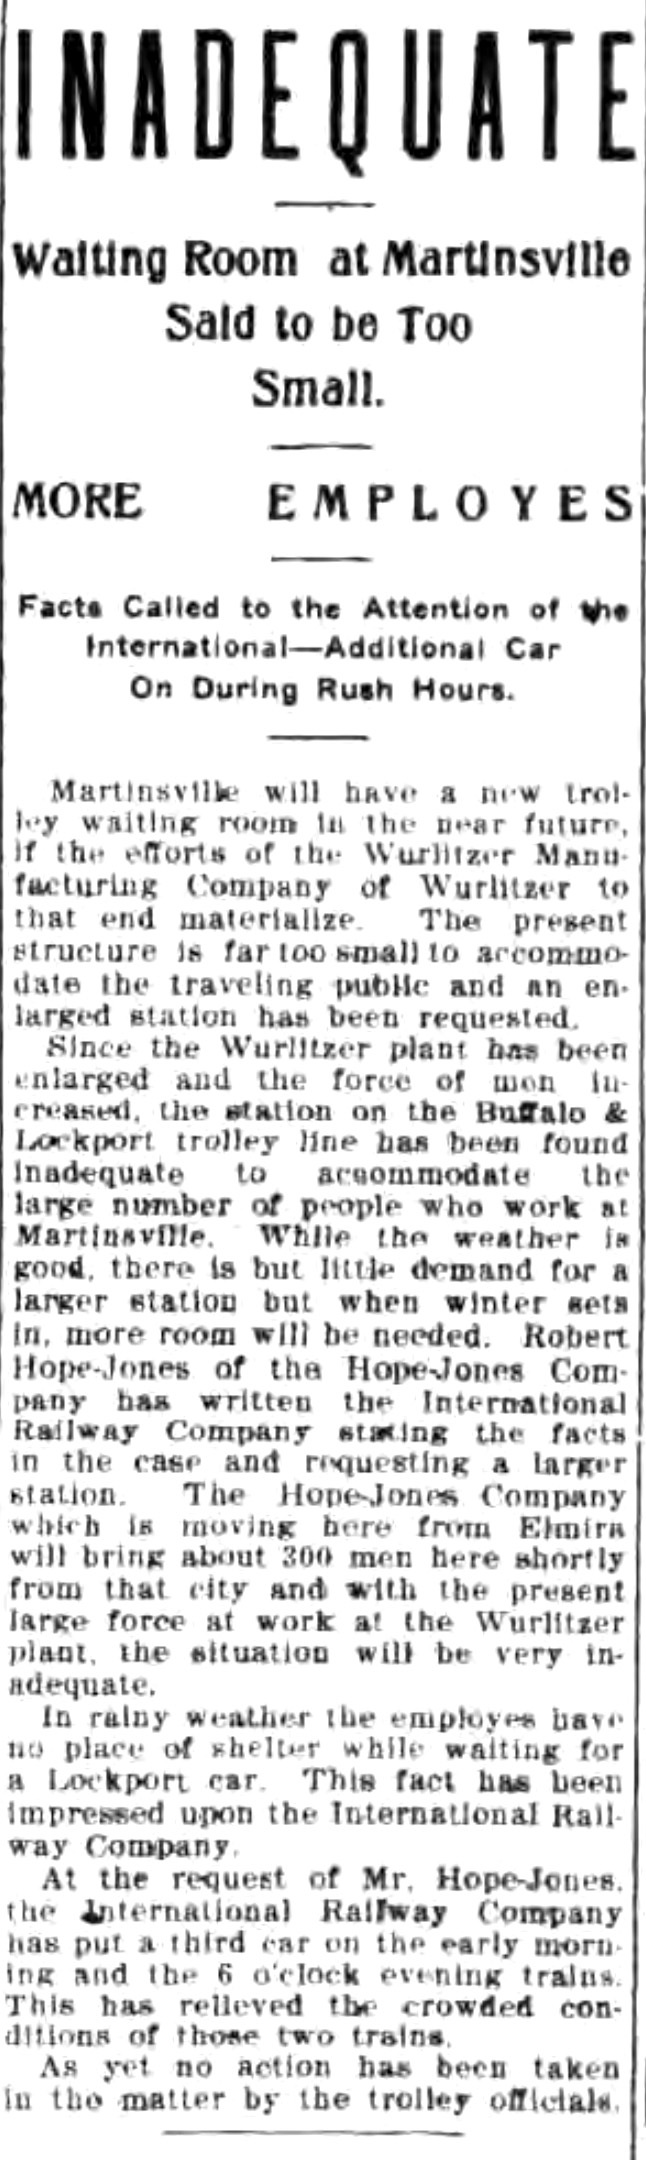 Inadequate, Martinsville trolley waiting room too small for Wurlitzer, article (Tonawanda News, 1910-09-07).jpg